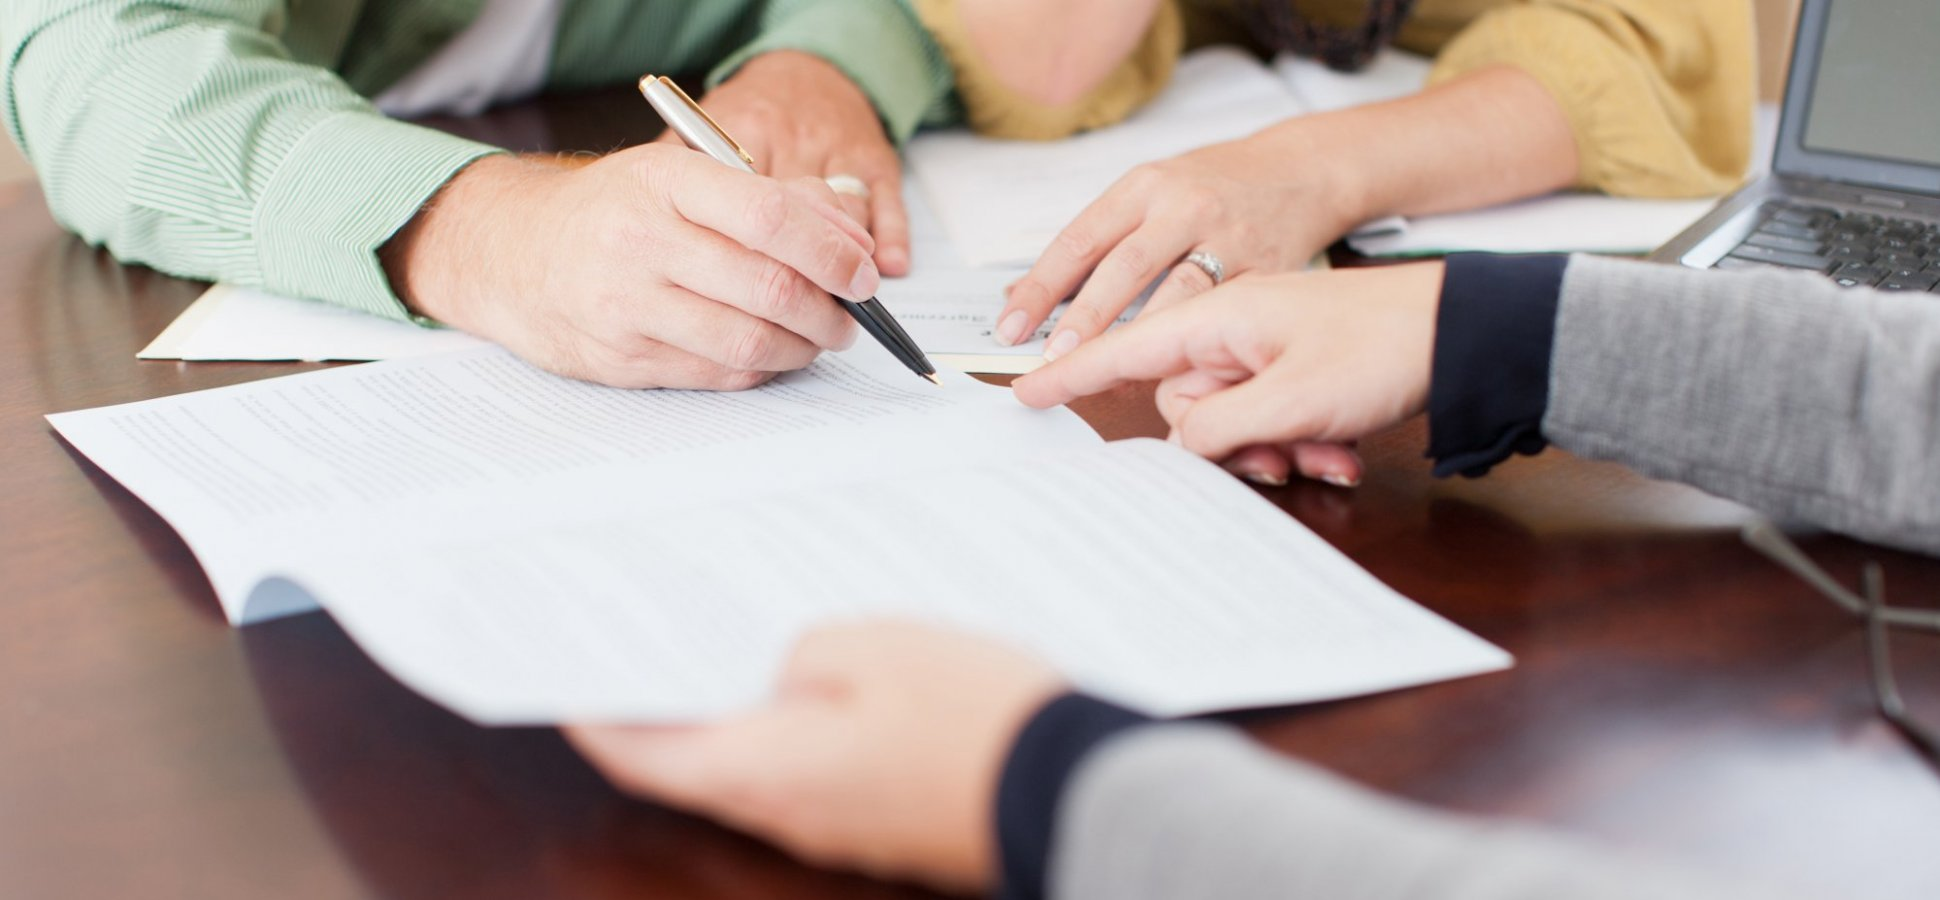 7 Common Reasons to Hire Someone to Do Your Taxes